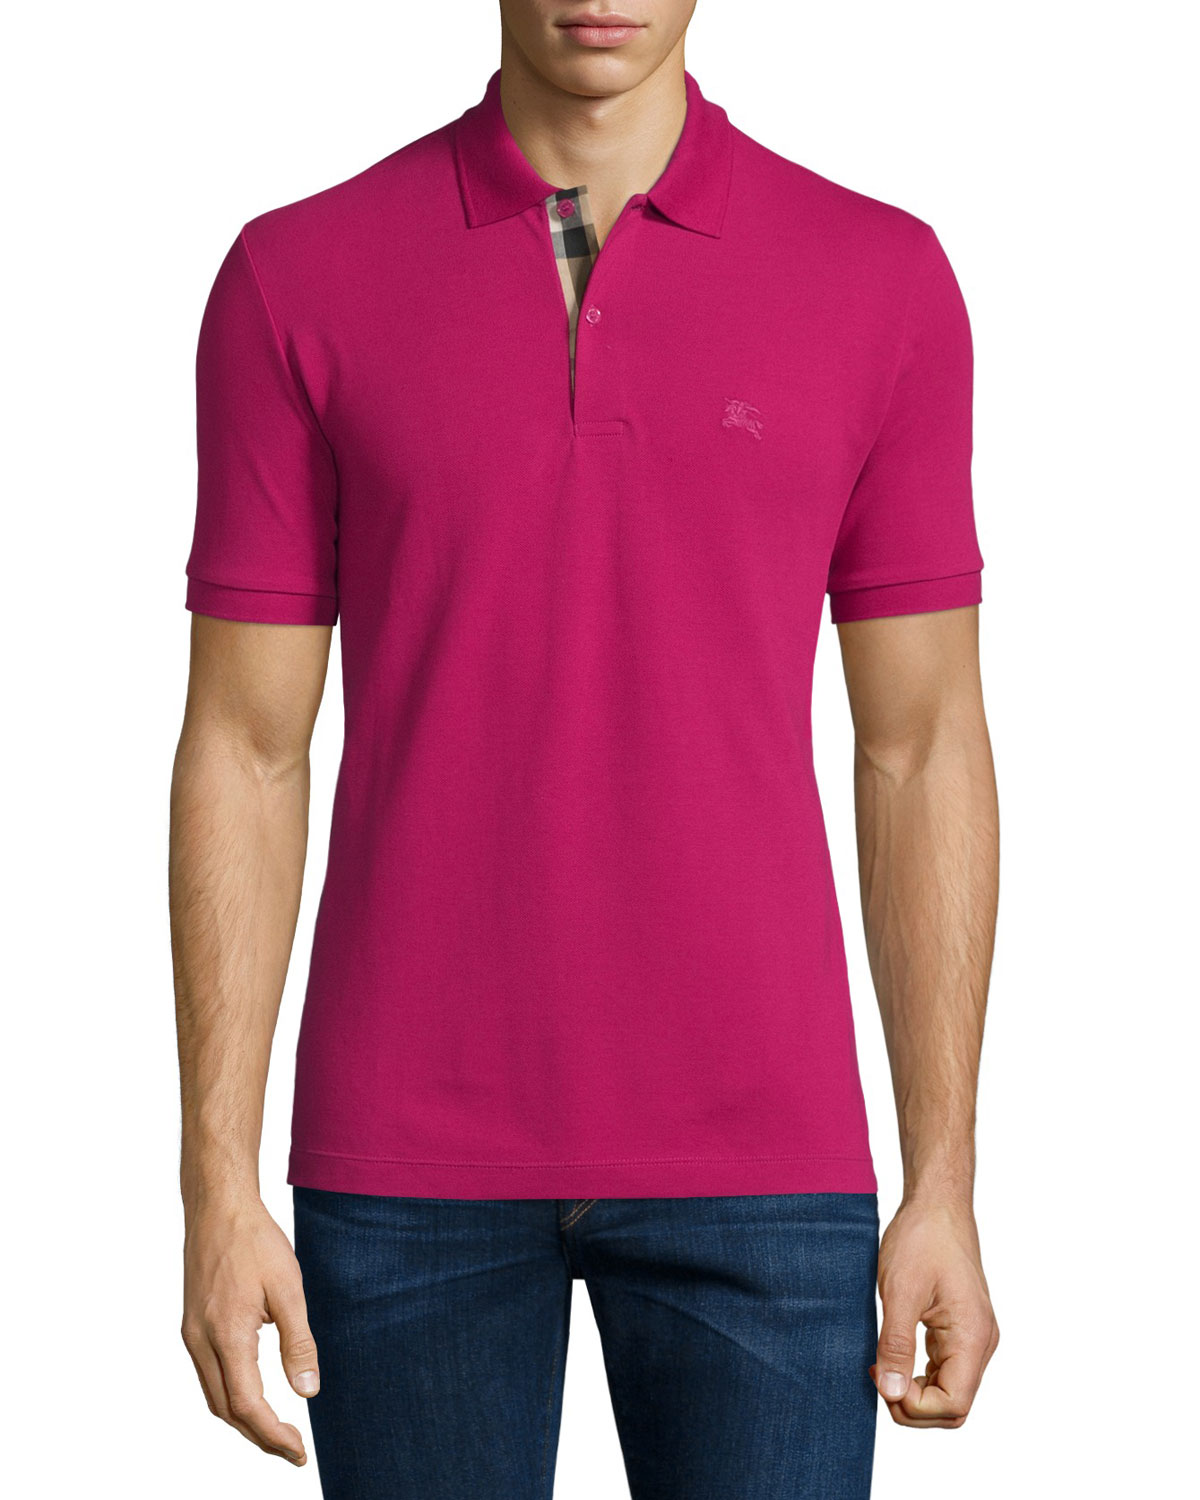 Short-Sleeve Pique Polo Shirt, Fuchsia